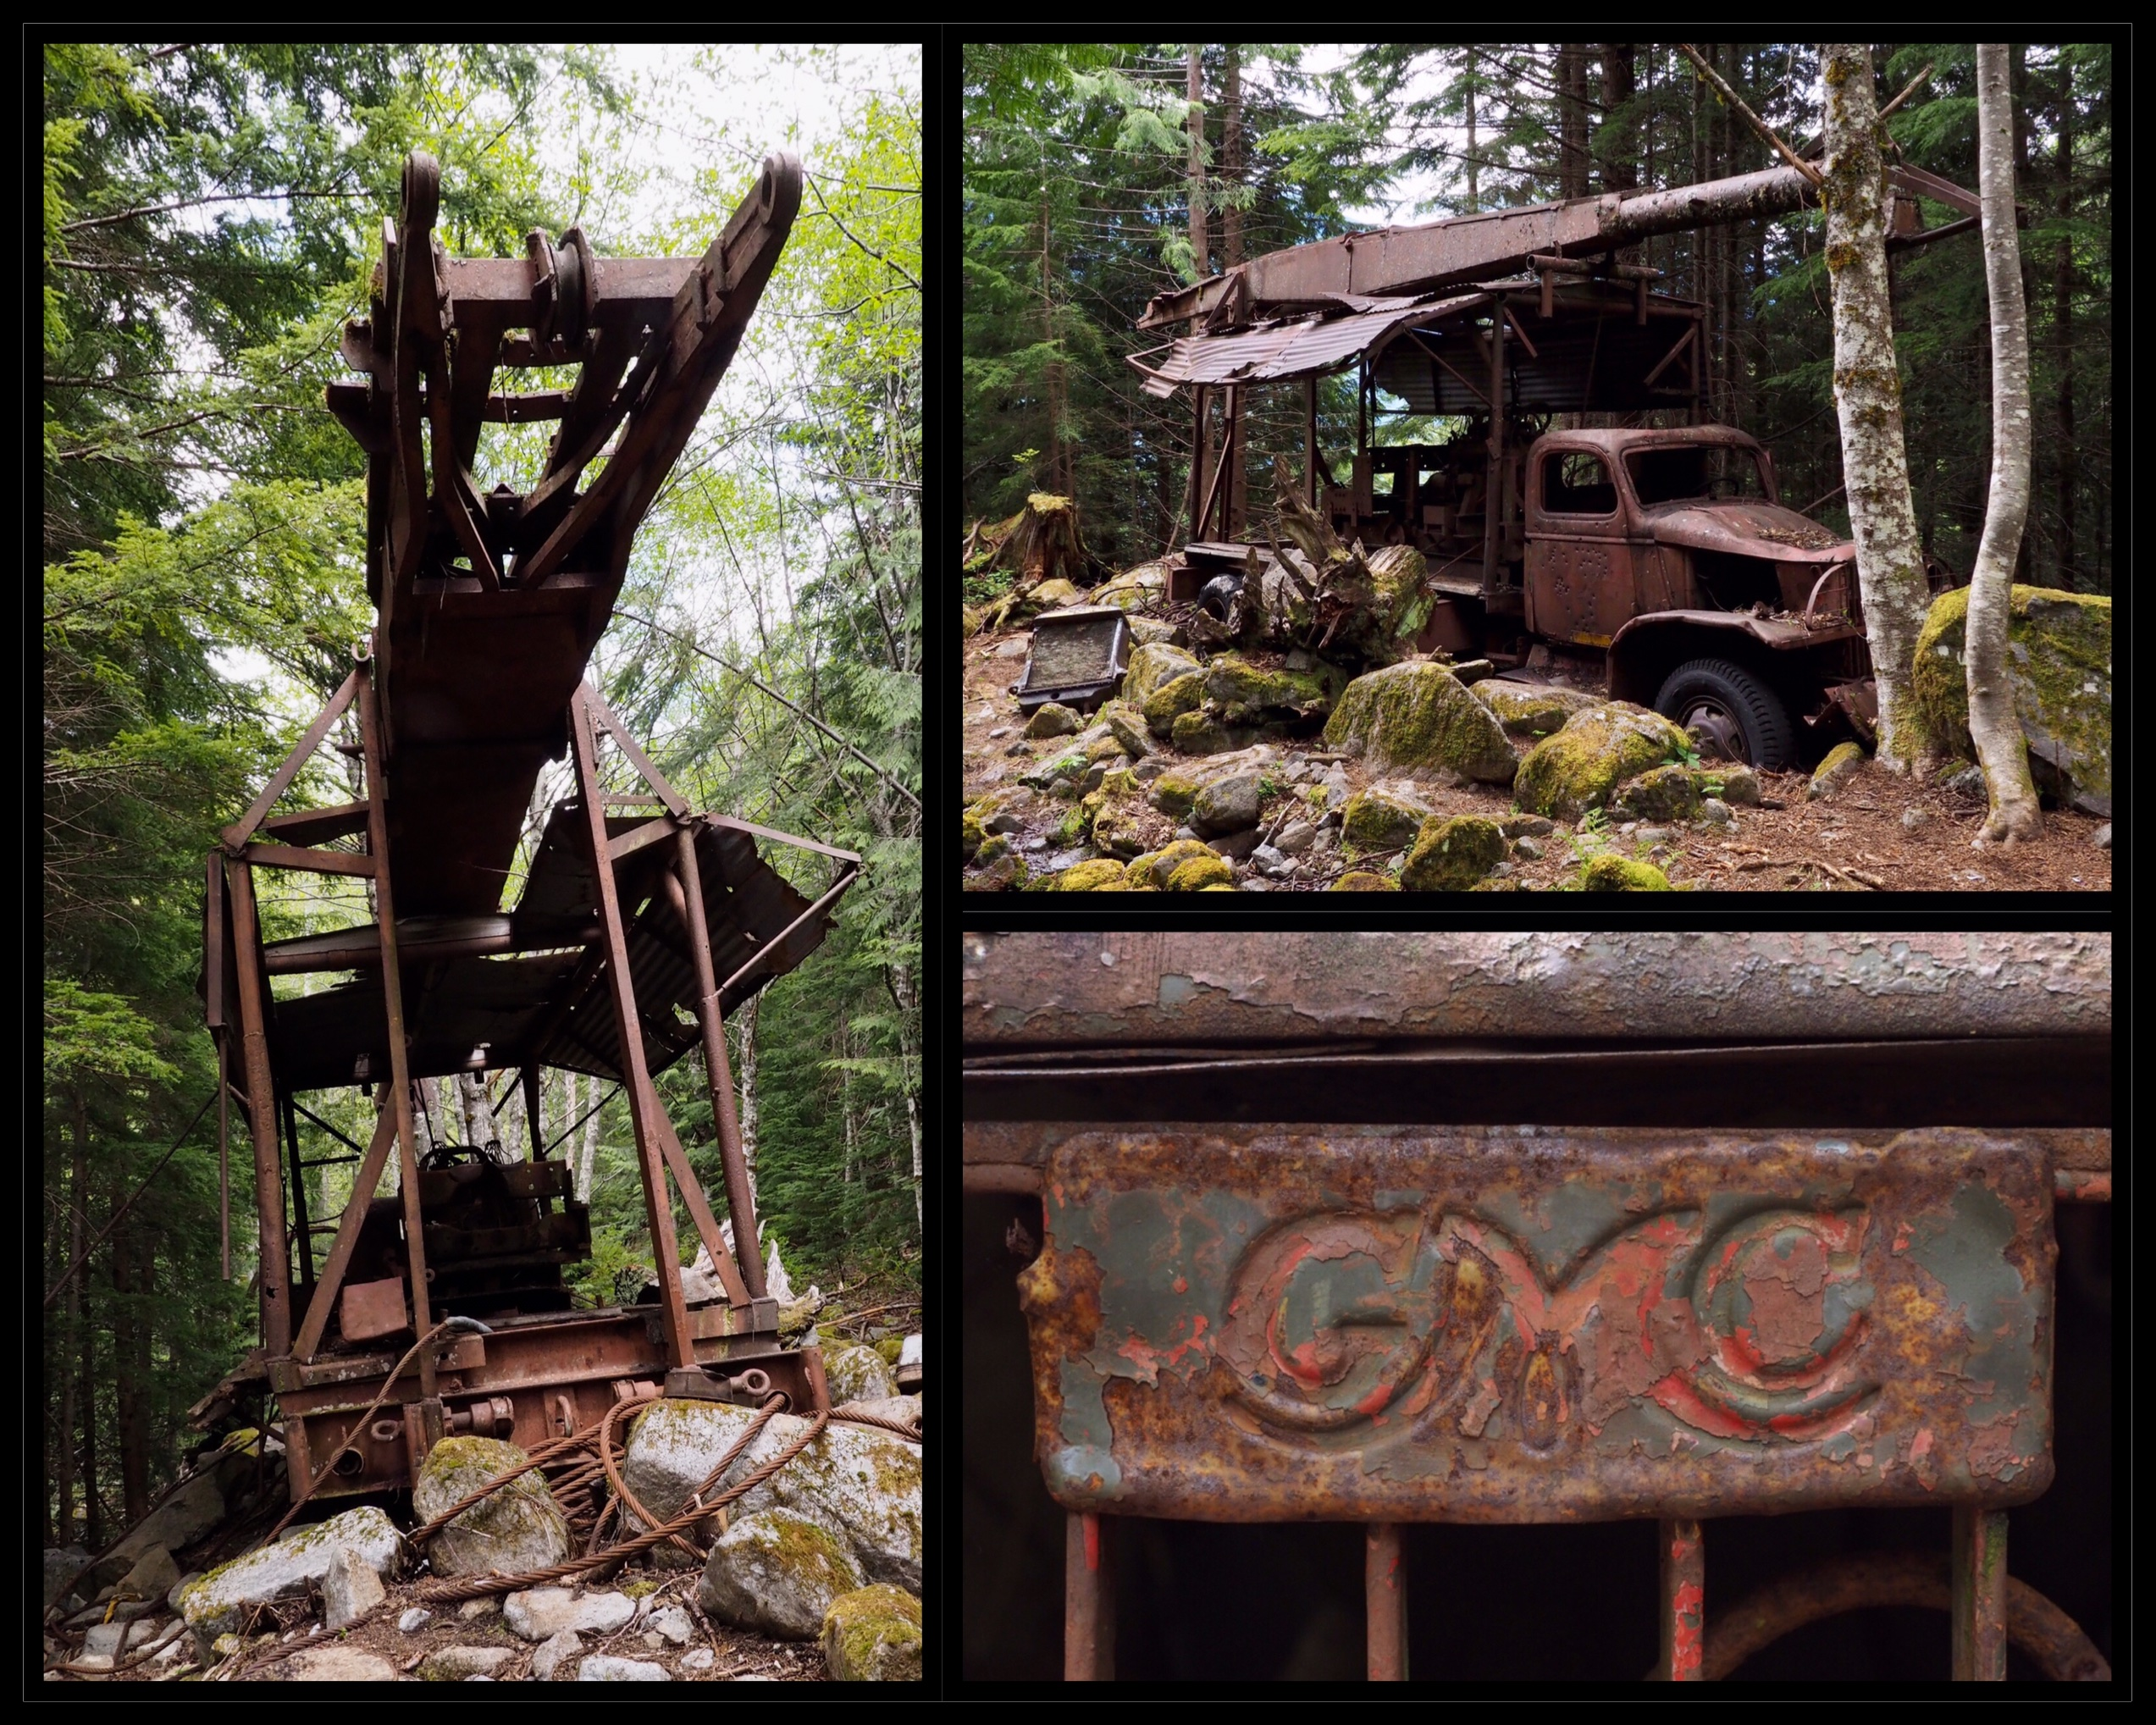 "Dirty Harry's ""Museum"" consists of one of his abandoned trucks, some rusting cables, and a few other odds and ends, although it is reportedly near a stash of equipment Dirty Harry himself referred to as his ""museum."" The truck appears to be a 1930s- or '40s-model GMC. Dirty Harry's Peak Trail, May 19, 2019."